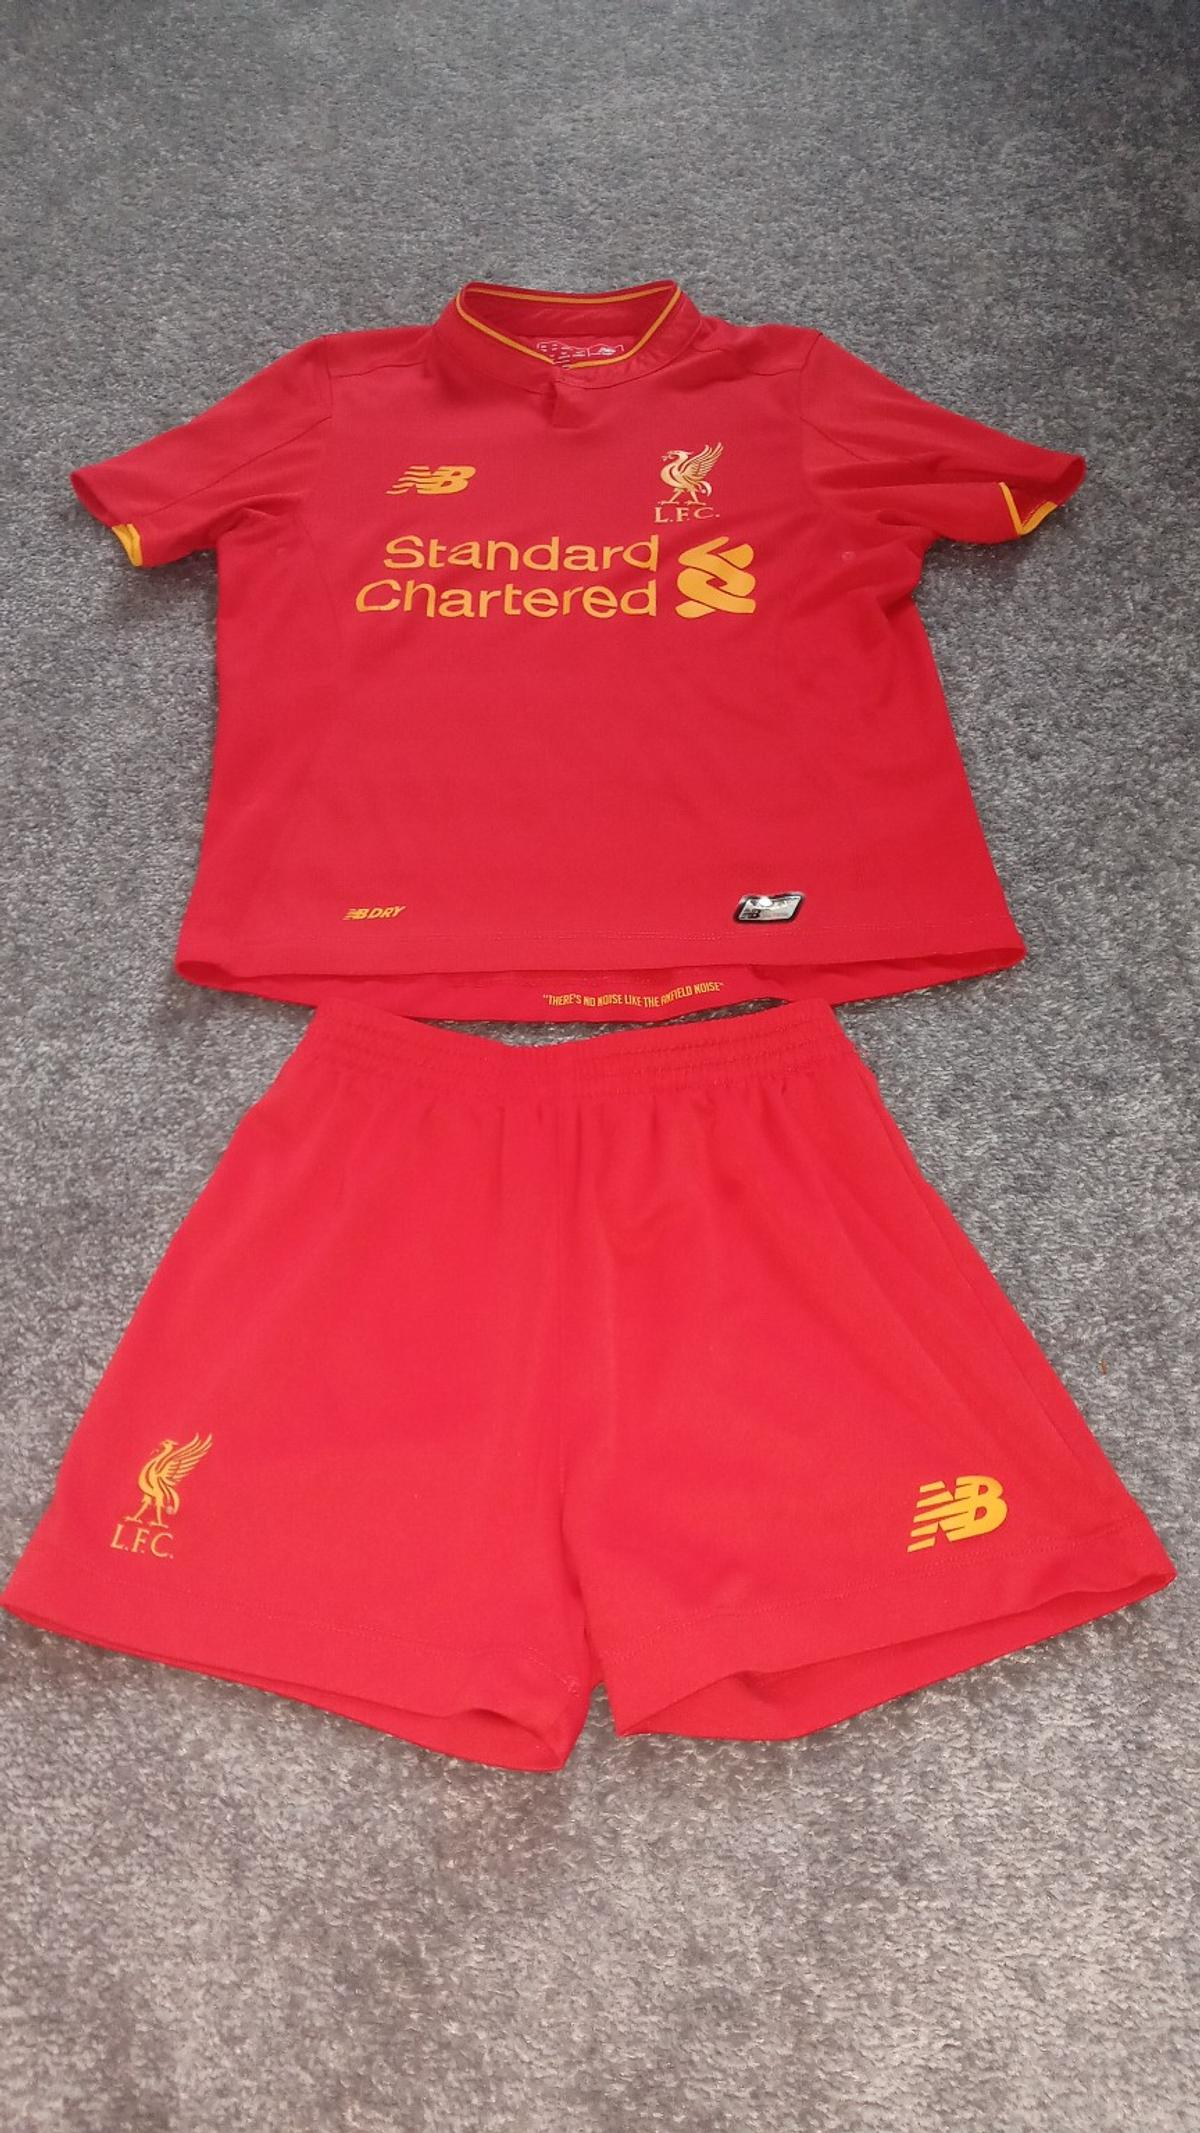 not sure what size. would say about 5-6 as fits my son now